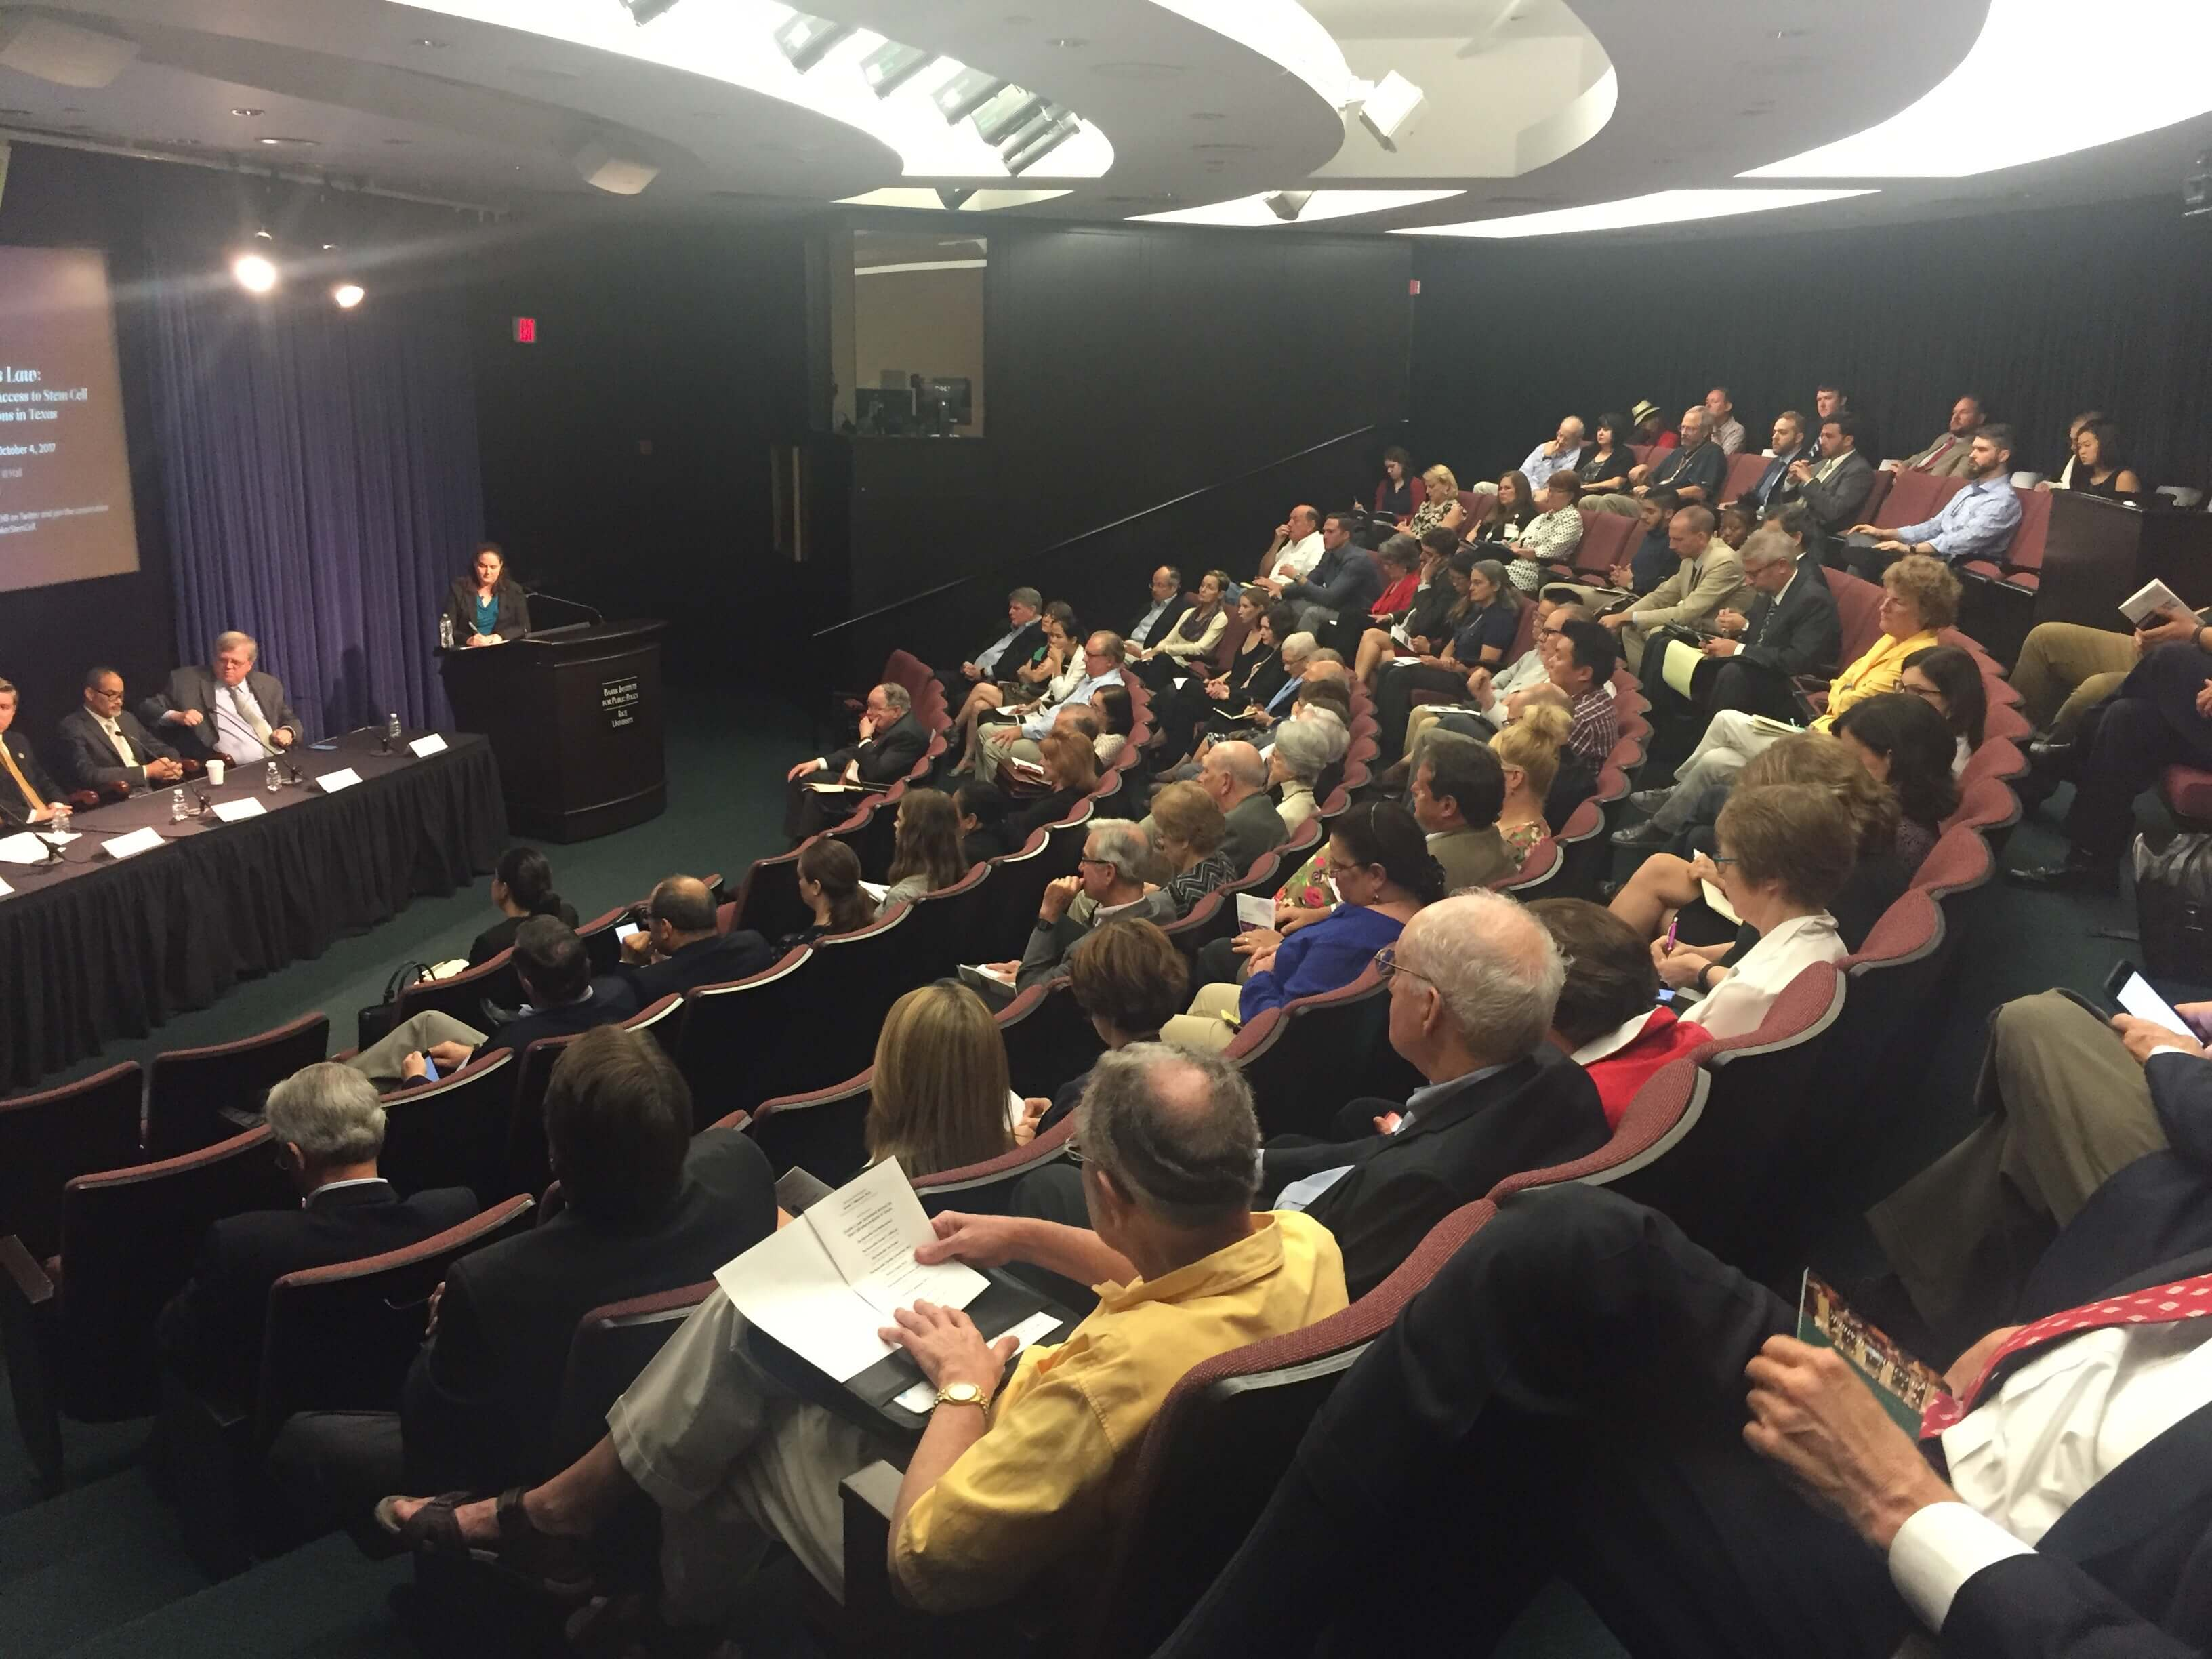 A panel discussion of Charlie's Law drew a large crowd to the Baker Institute at Rice University.